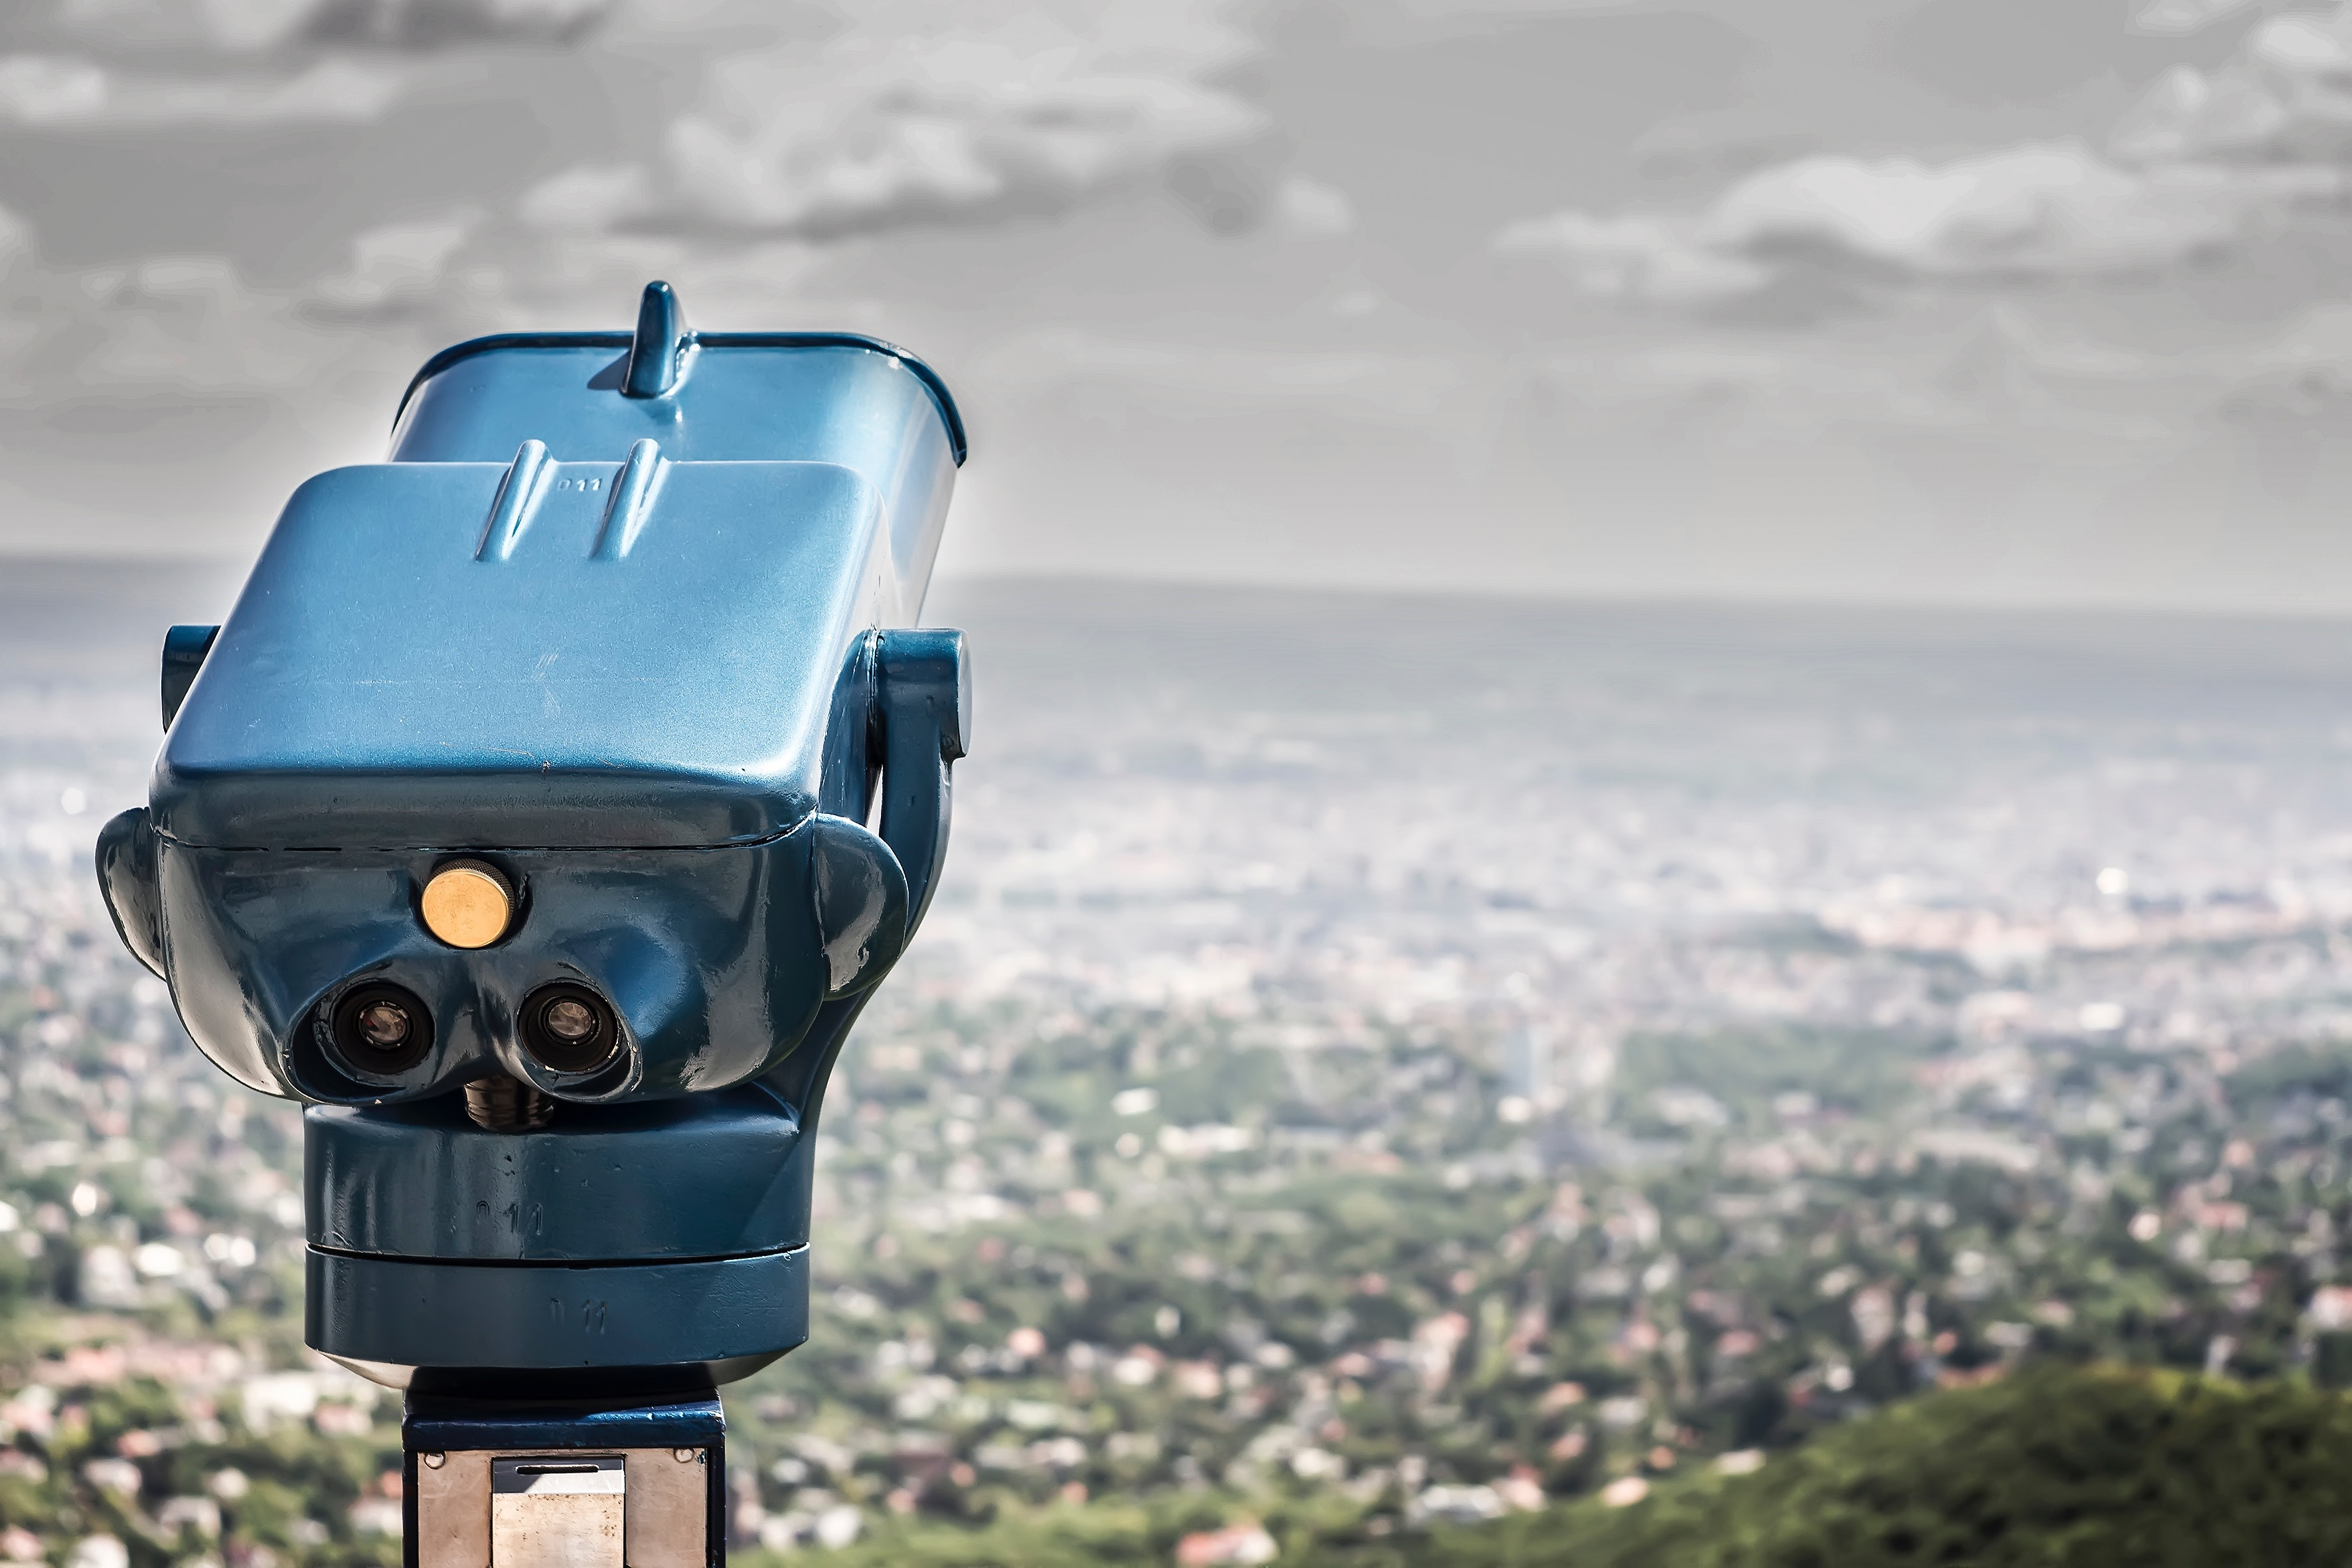 Blue Coin Operated Binocular With City View during Daytime, Sky, Tower viewer, Nature, Macro, HQ Photo